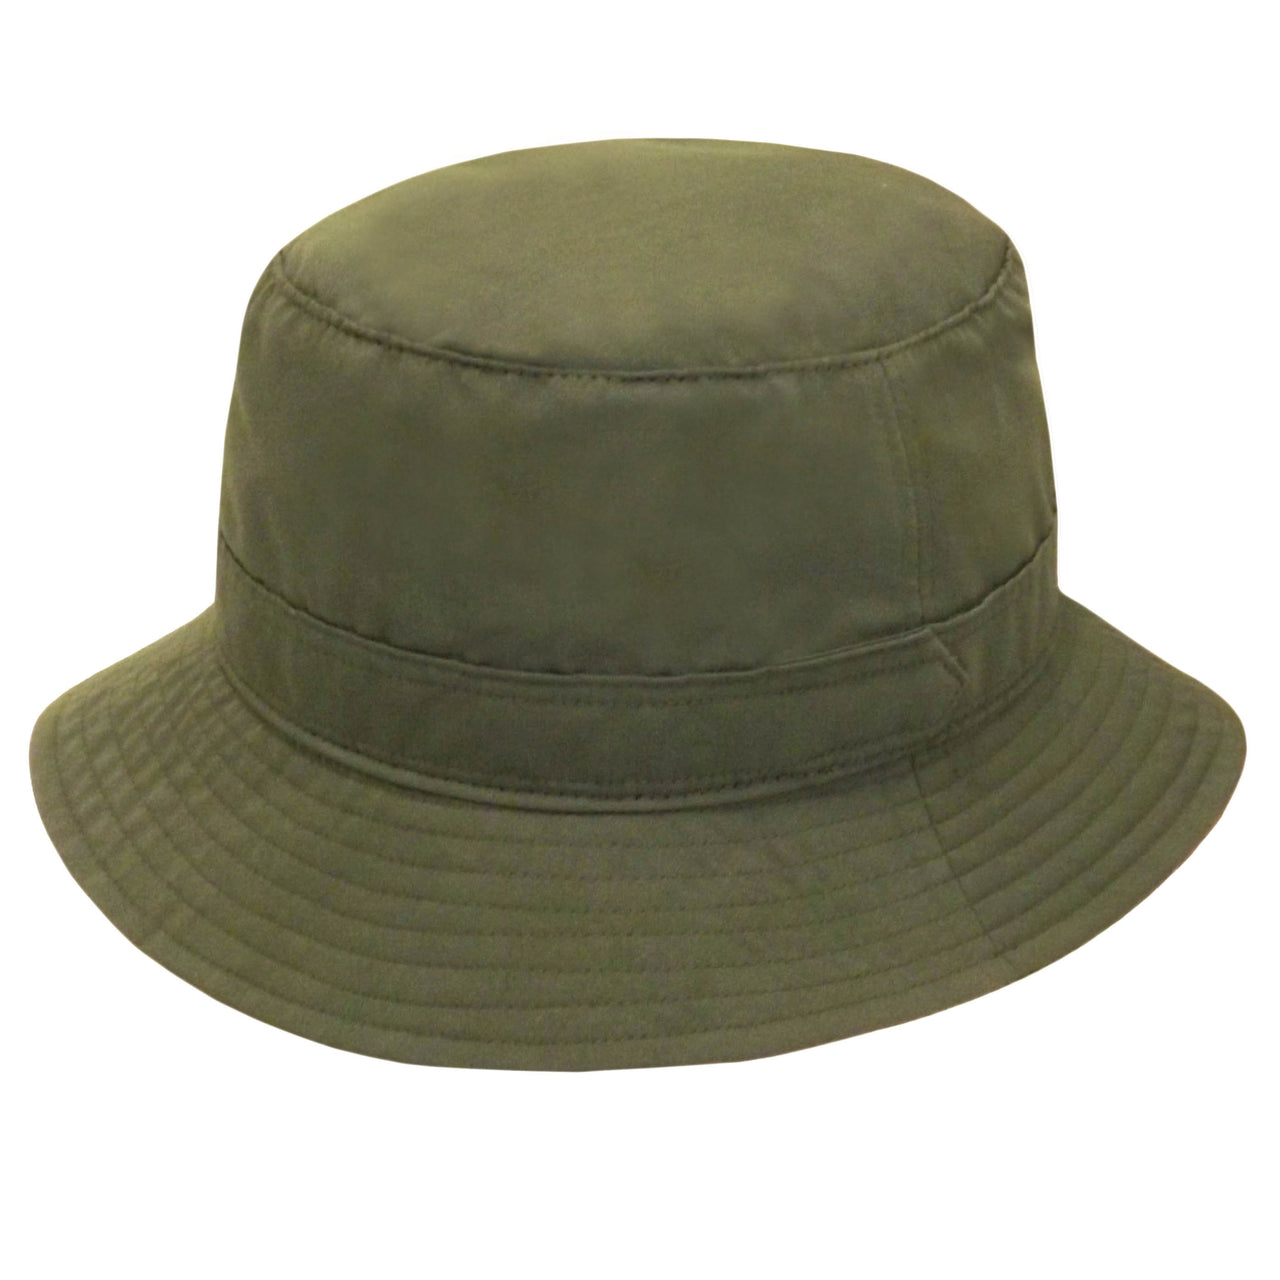 Hills Southerly Bucket Hat